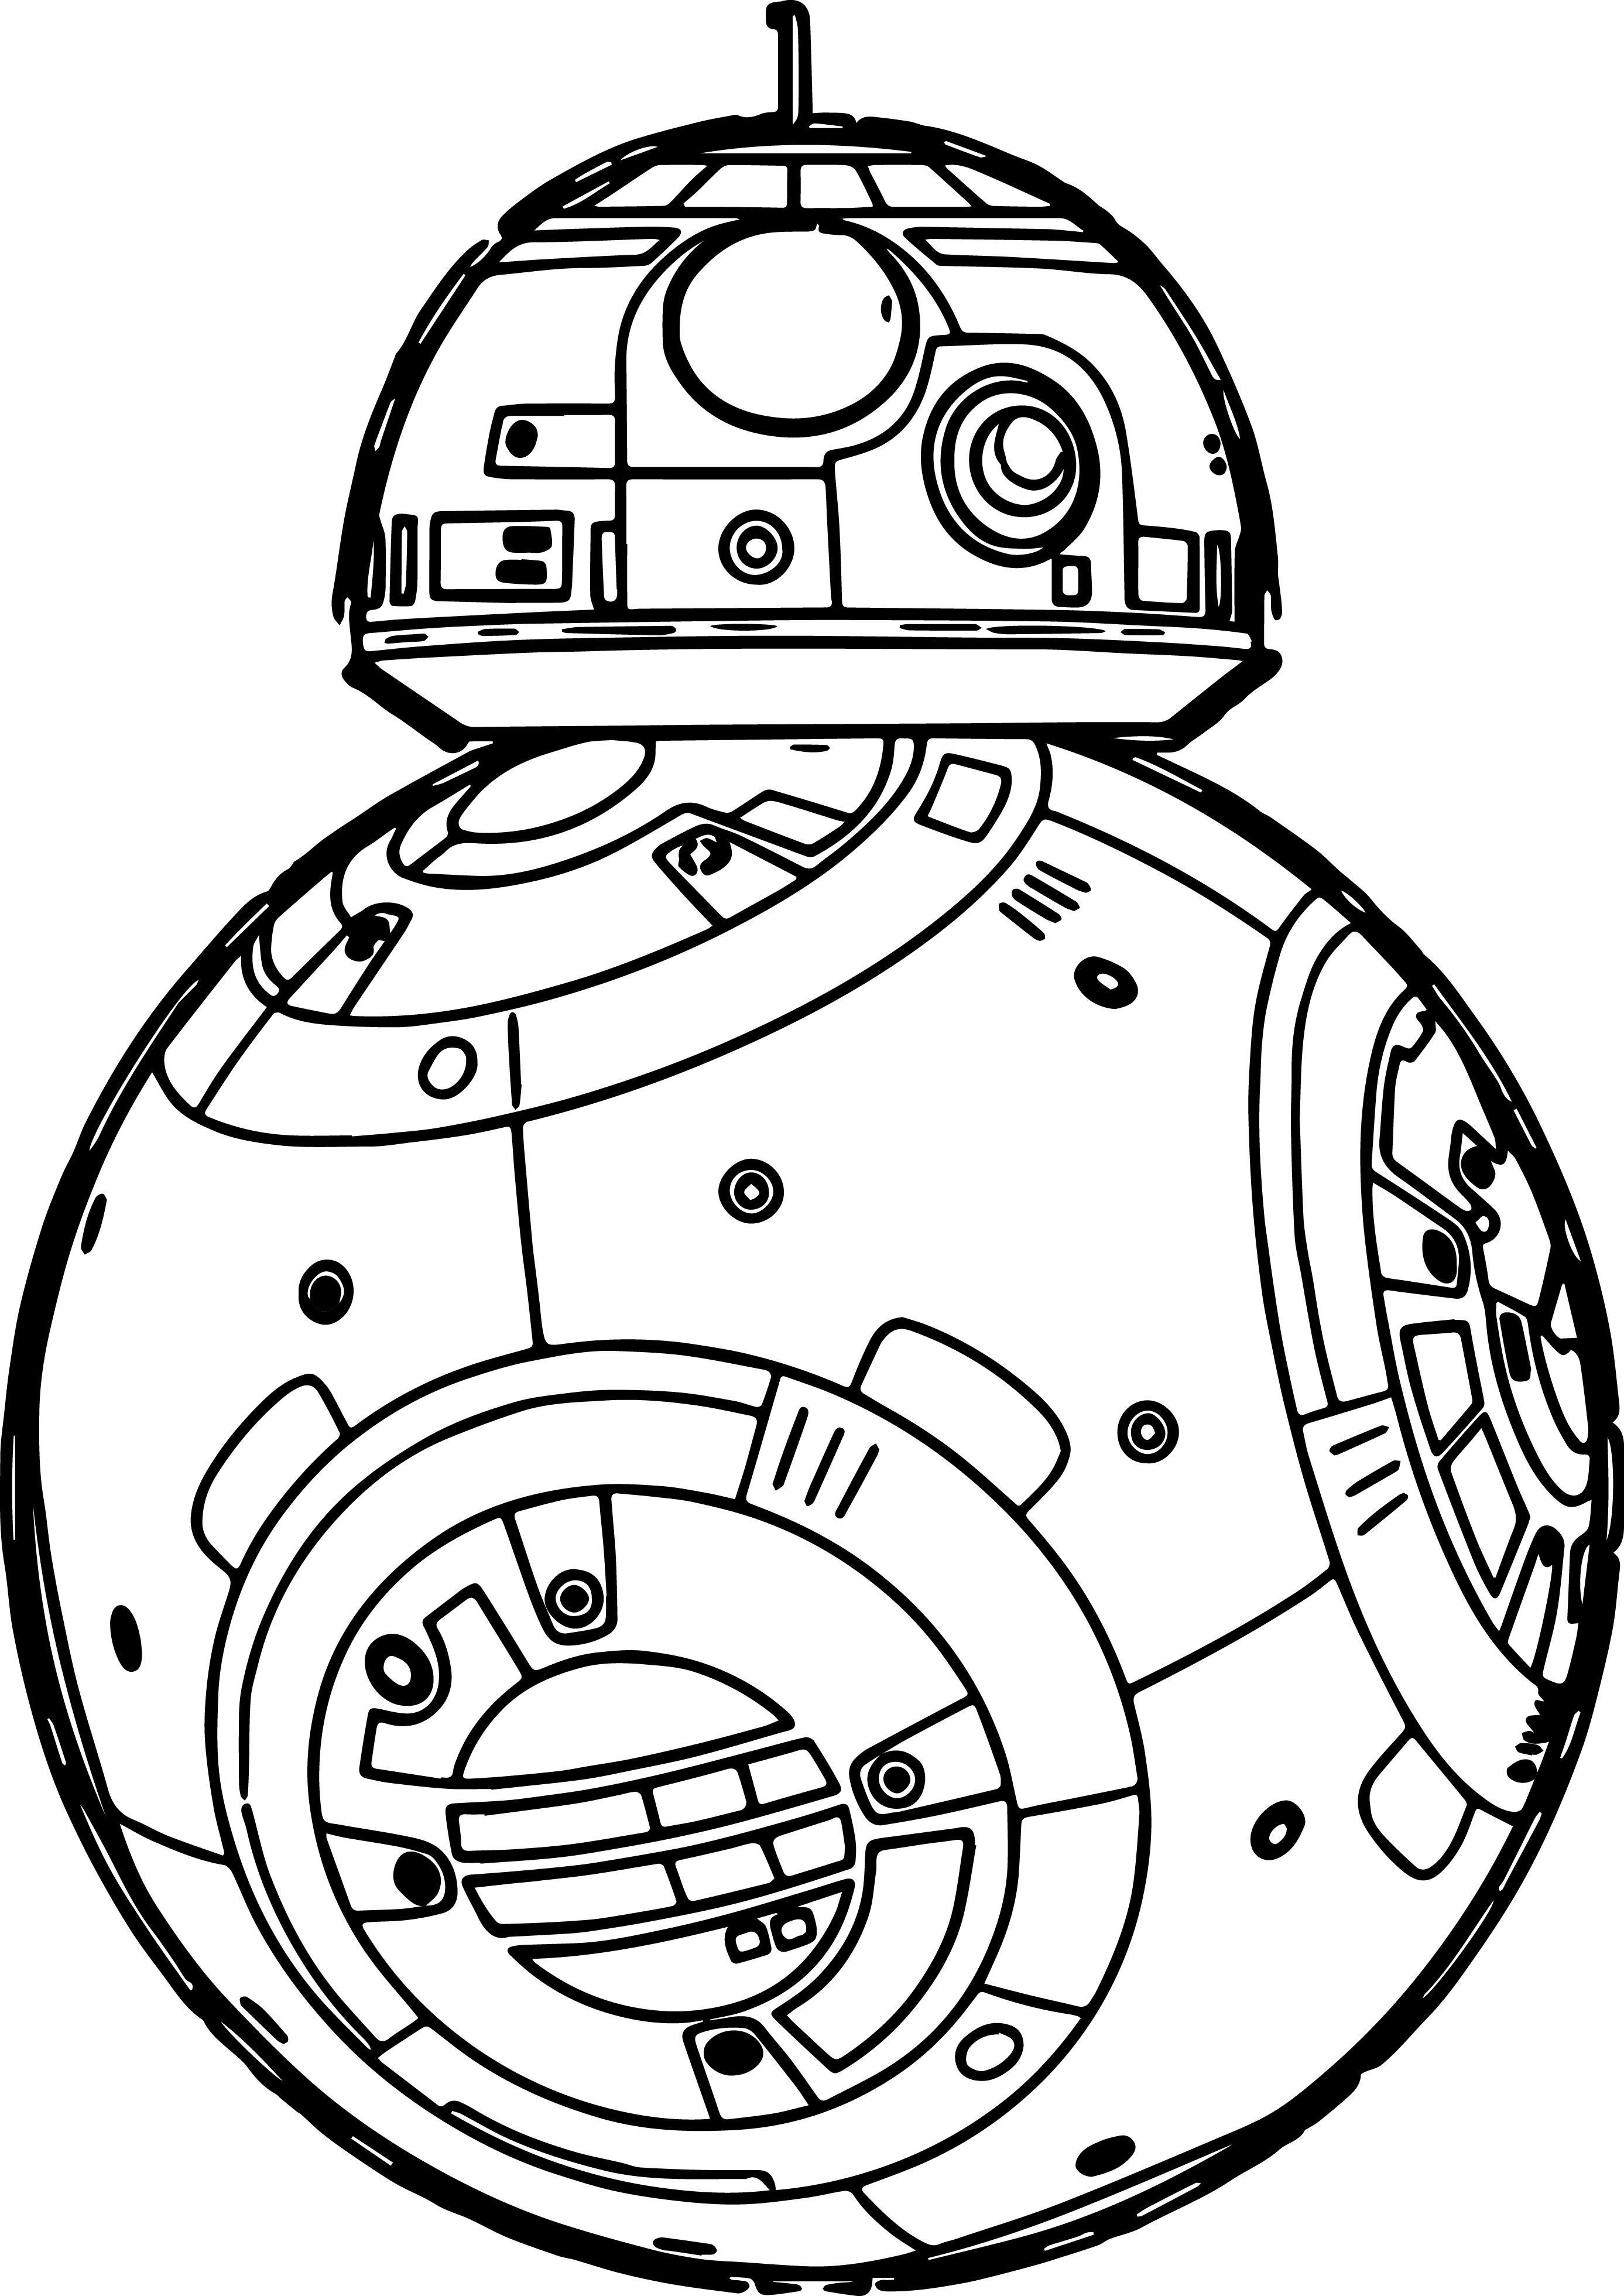 coloring star images brawl stars coloring pages download and print brawl stars images star coloring